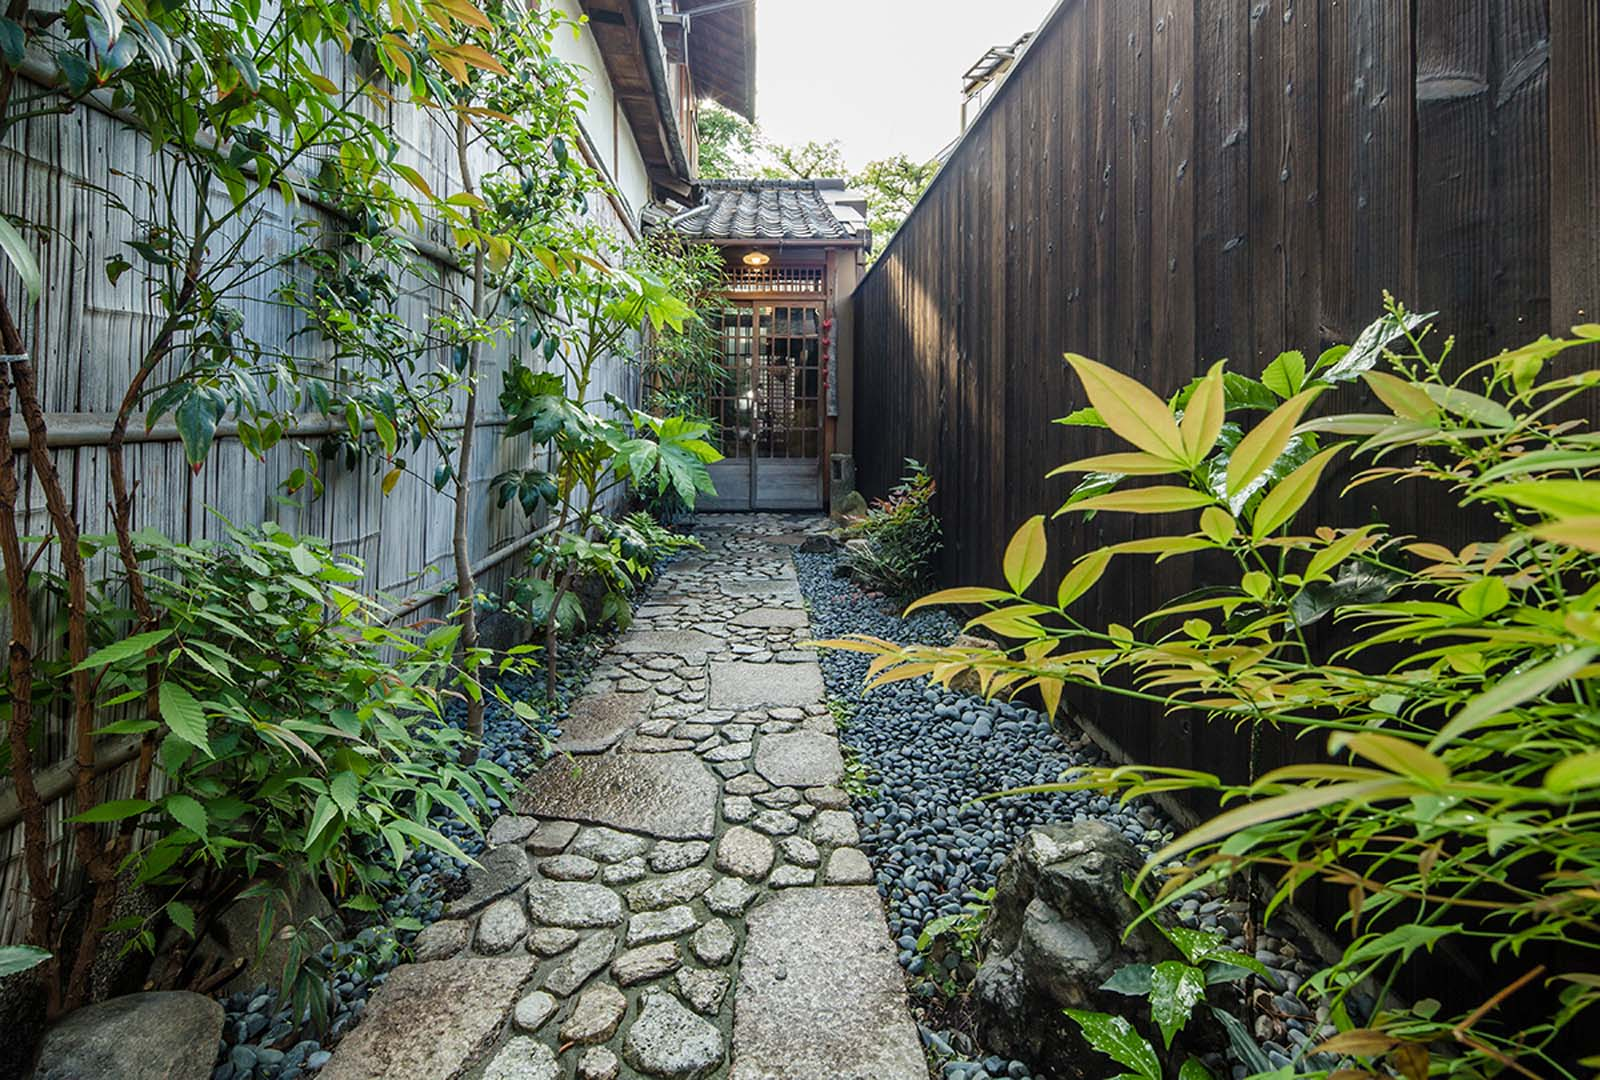 Reserve Your Private Home in Kyoto - Book your stay at our Temple Garden View Suite